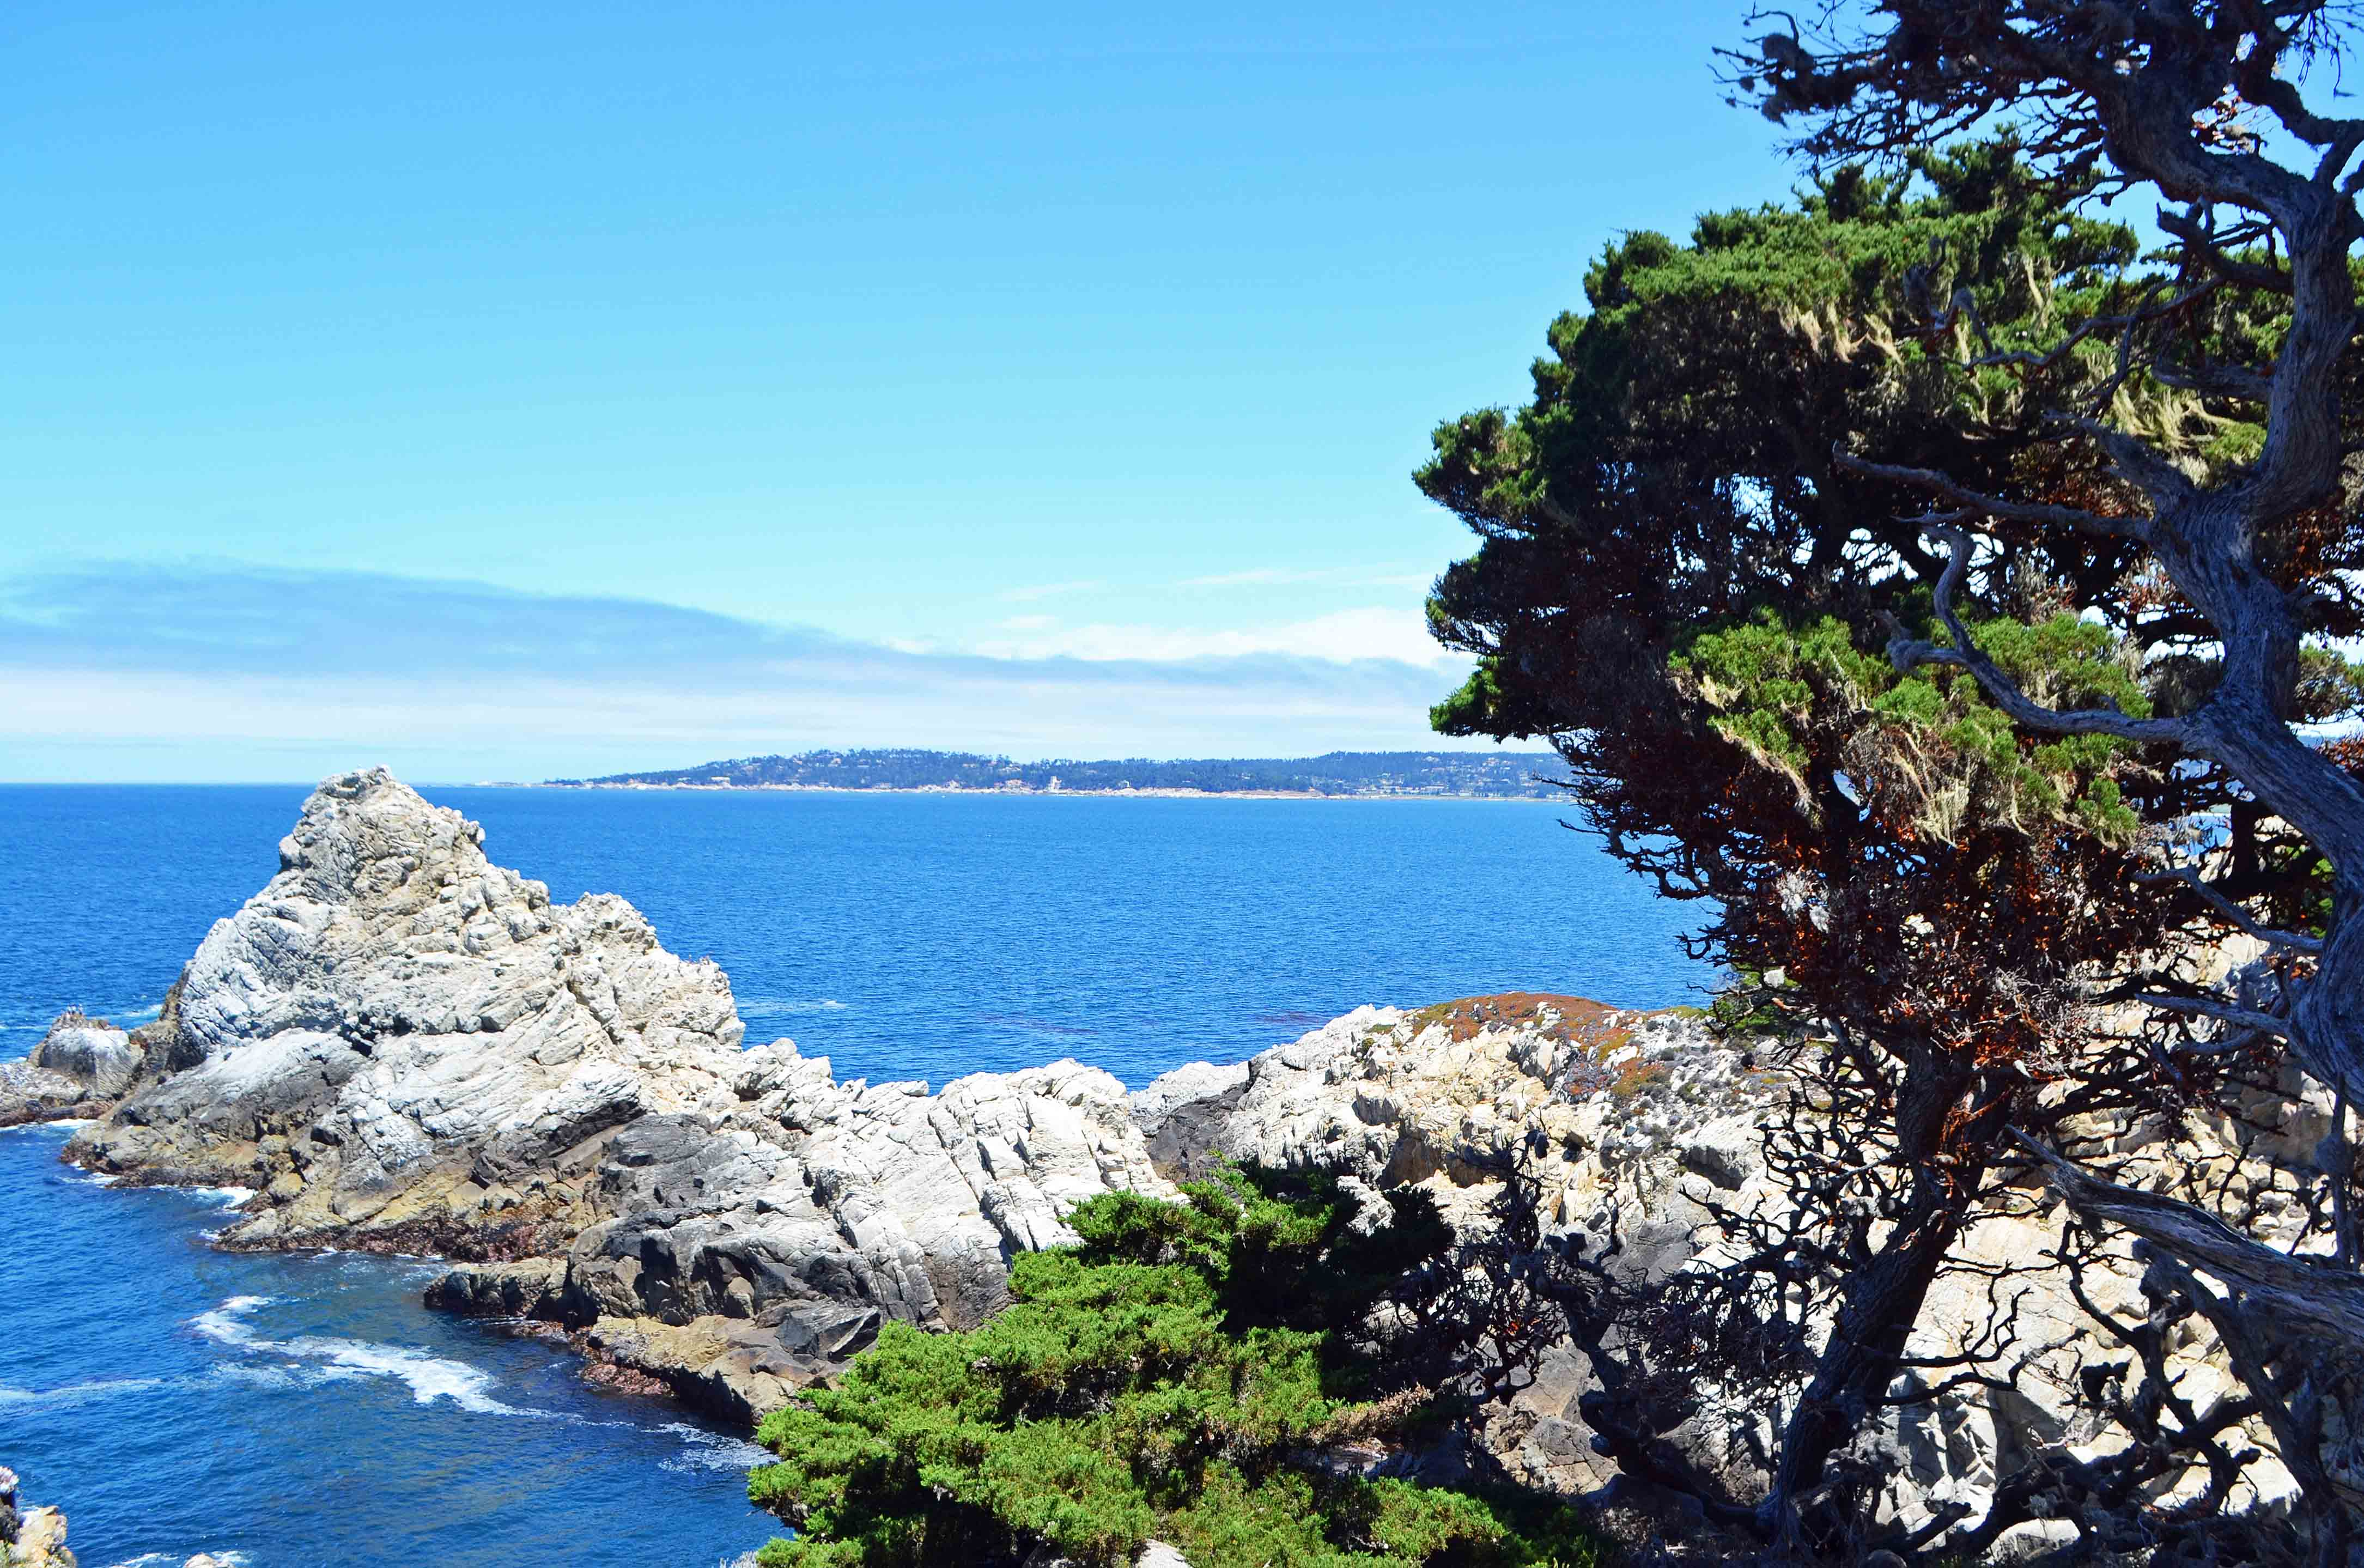 Point Lobos Reserve California Pacific Coast Highway 1 Road Trip Guide